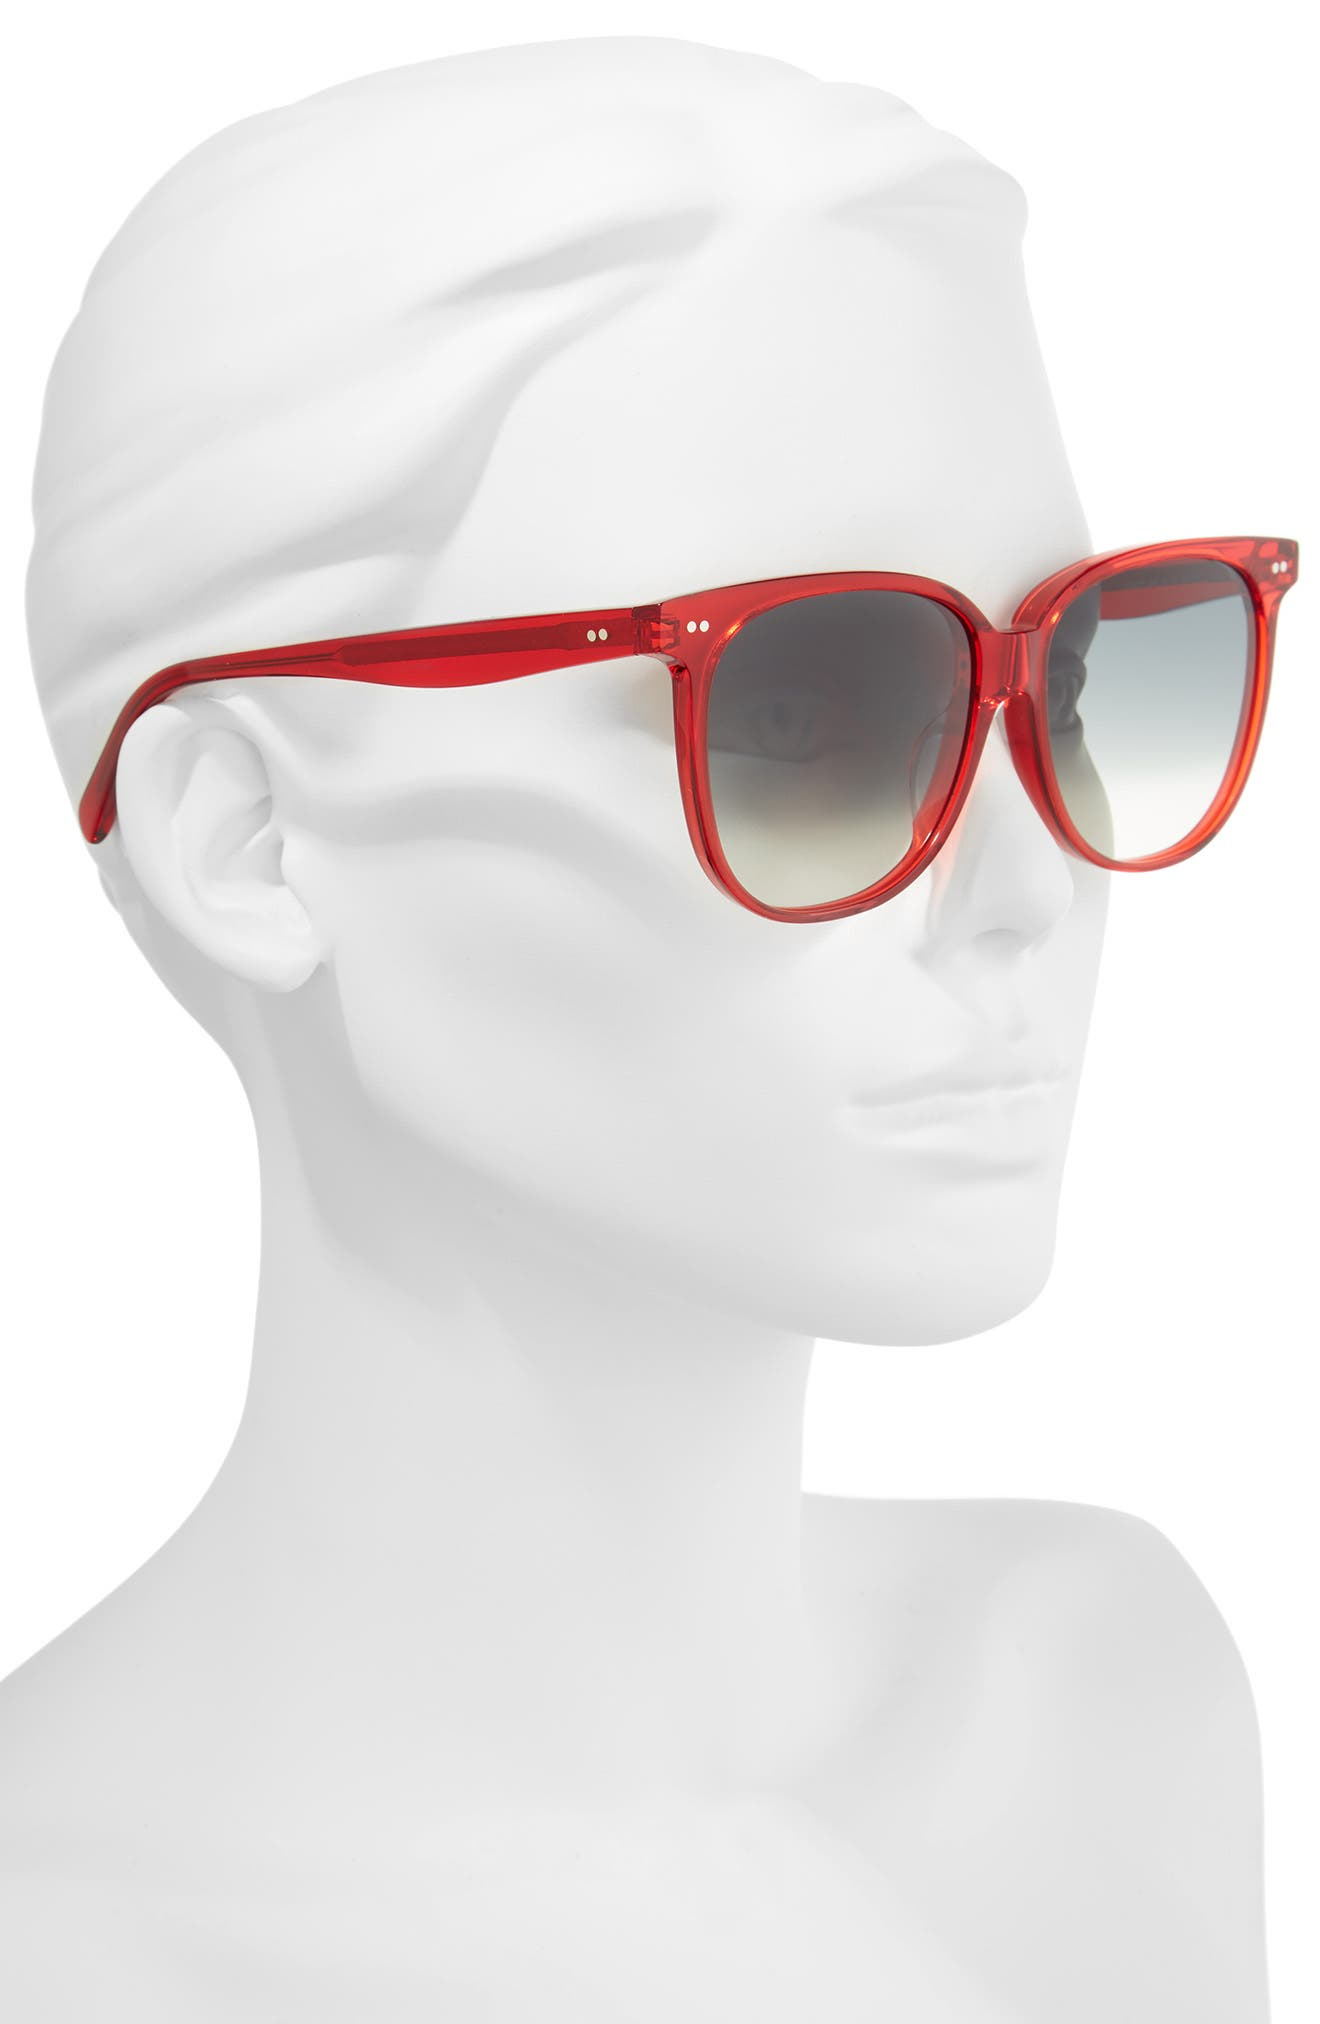 Special Fit 58mm Square Sunglasses,                             Alternate thumbnail 2, color,                             Red/ Green